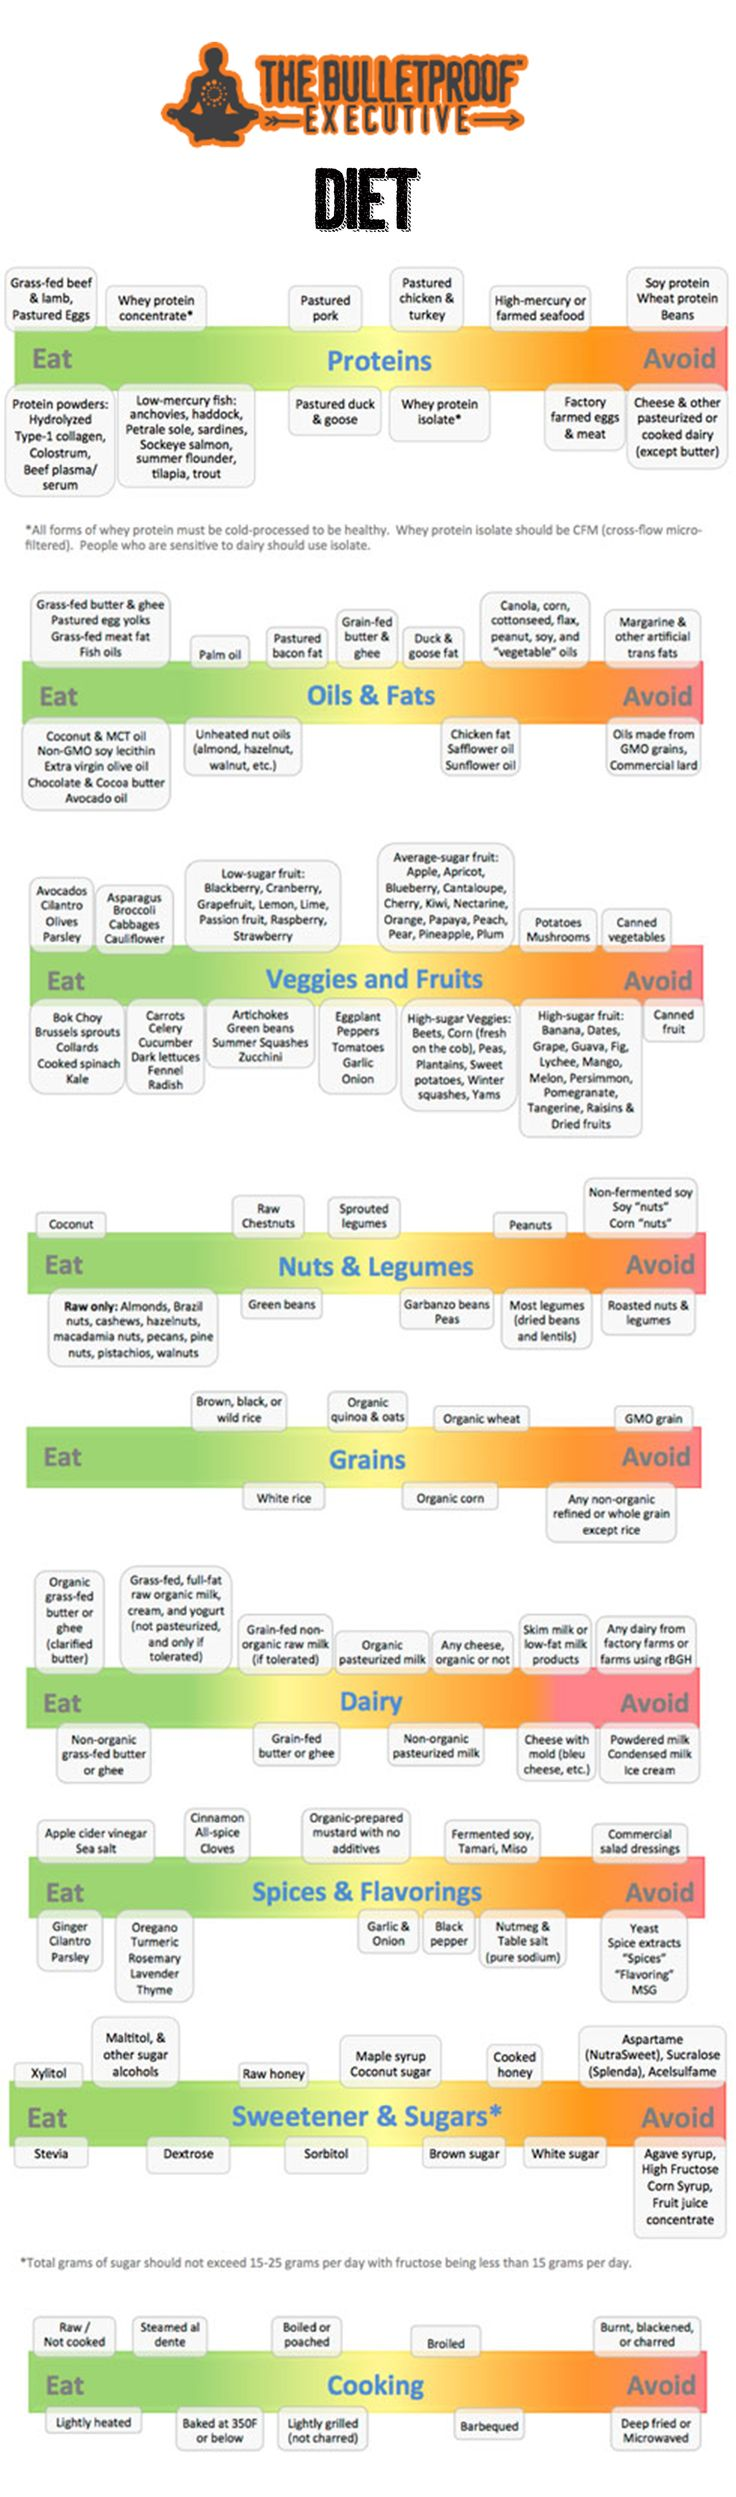 Everything you wanted to know about the Bulletproof Diet in one handy infograph.